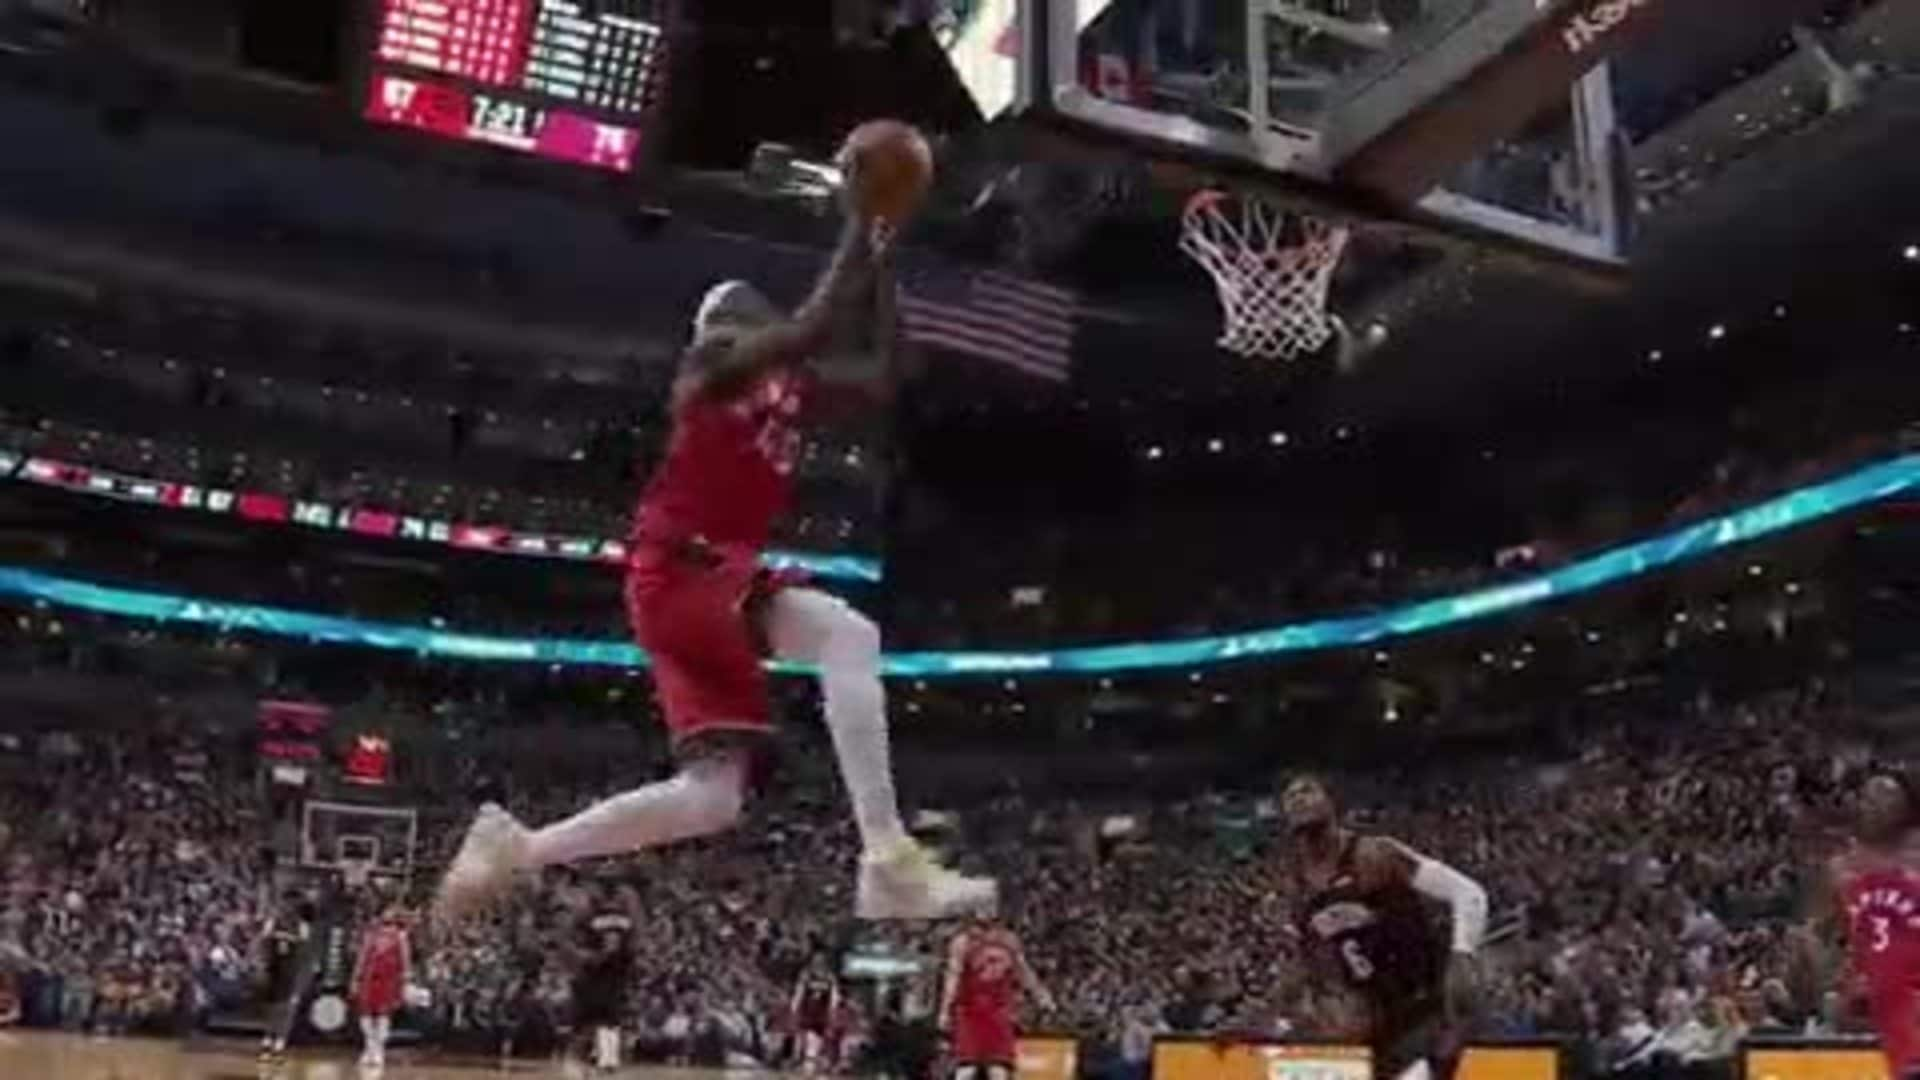 Raptors Highlights: Siakam Alley Oop - December 5, 2019